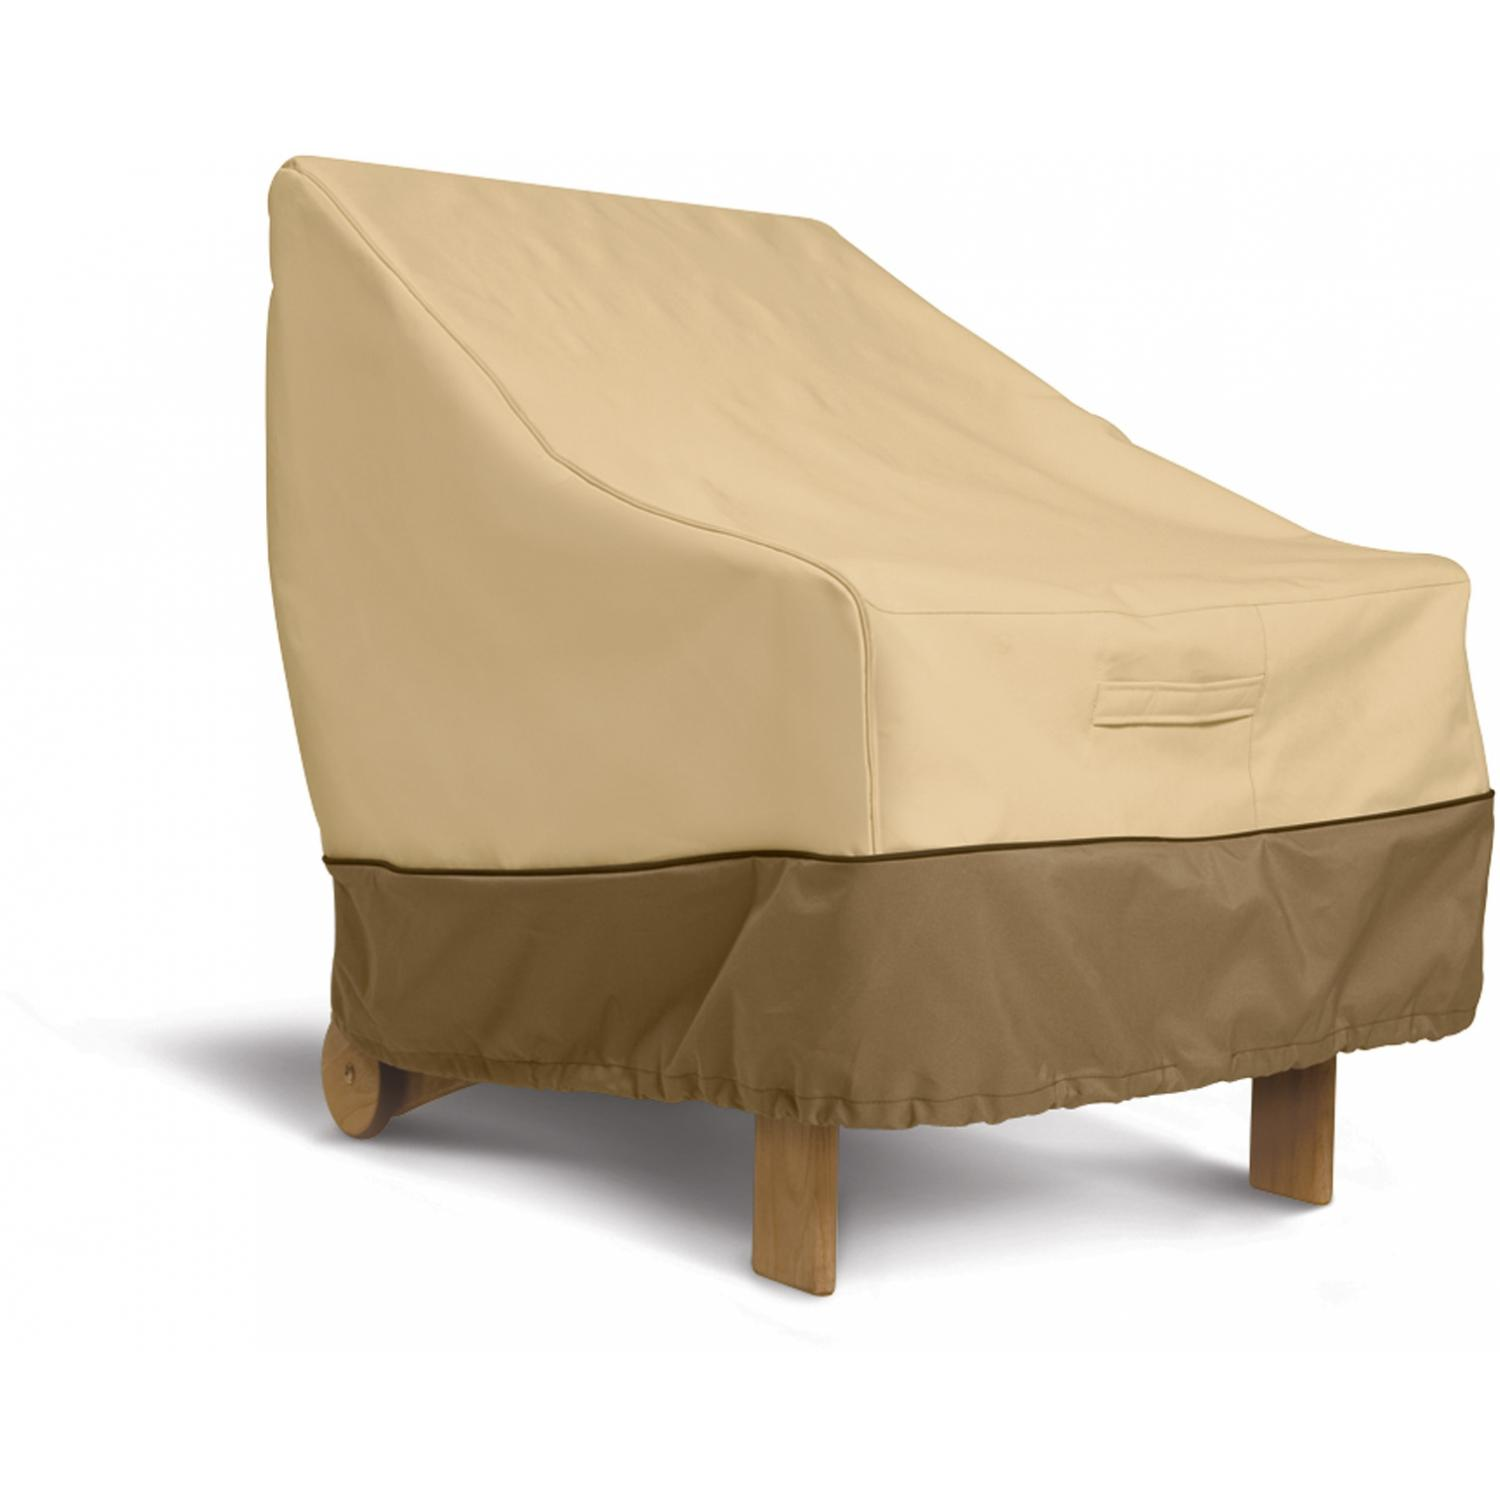 affordable chair covers calgary shower chairs with arms 31 amazing patio cheap pixelmari